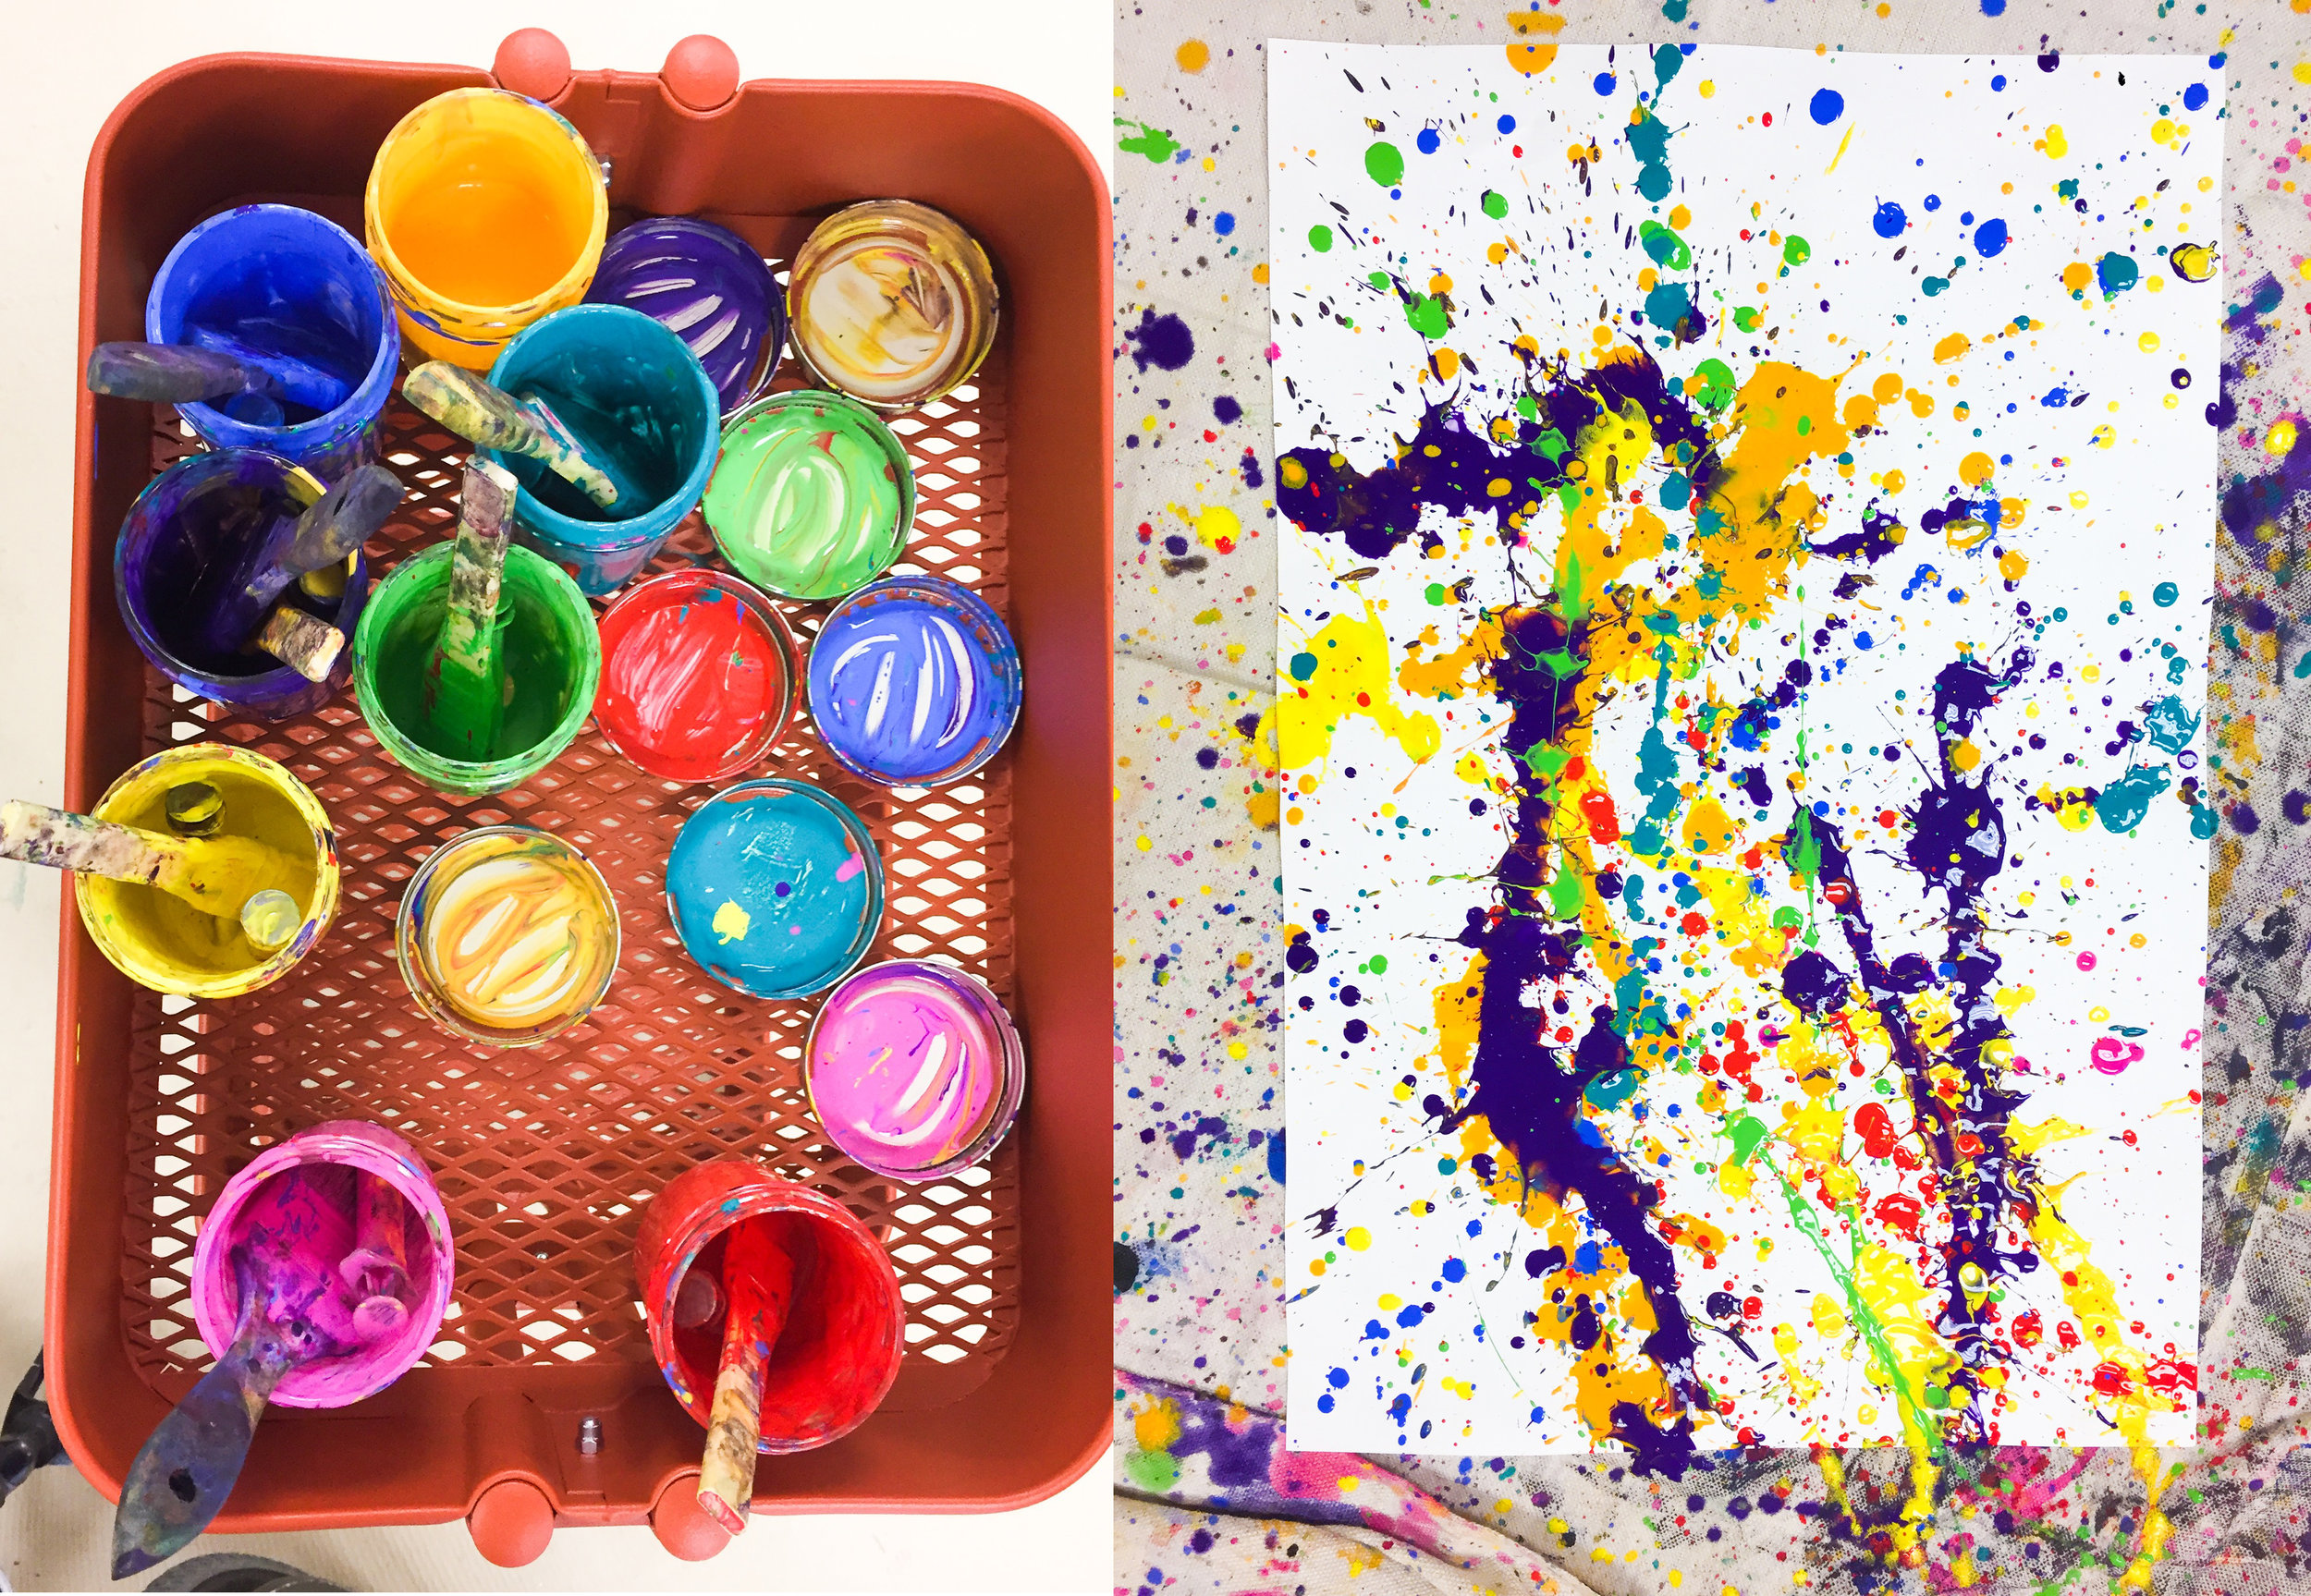 Tools of the trade and a splatter painting